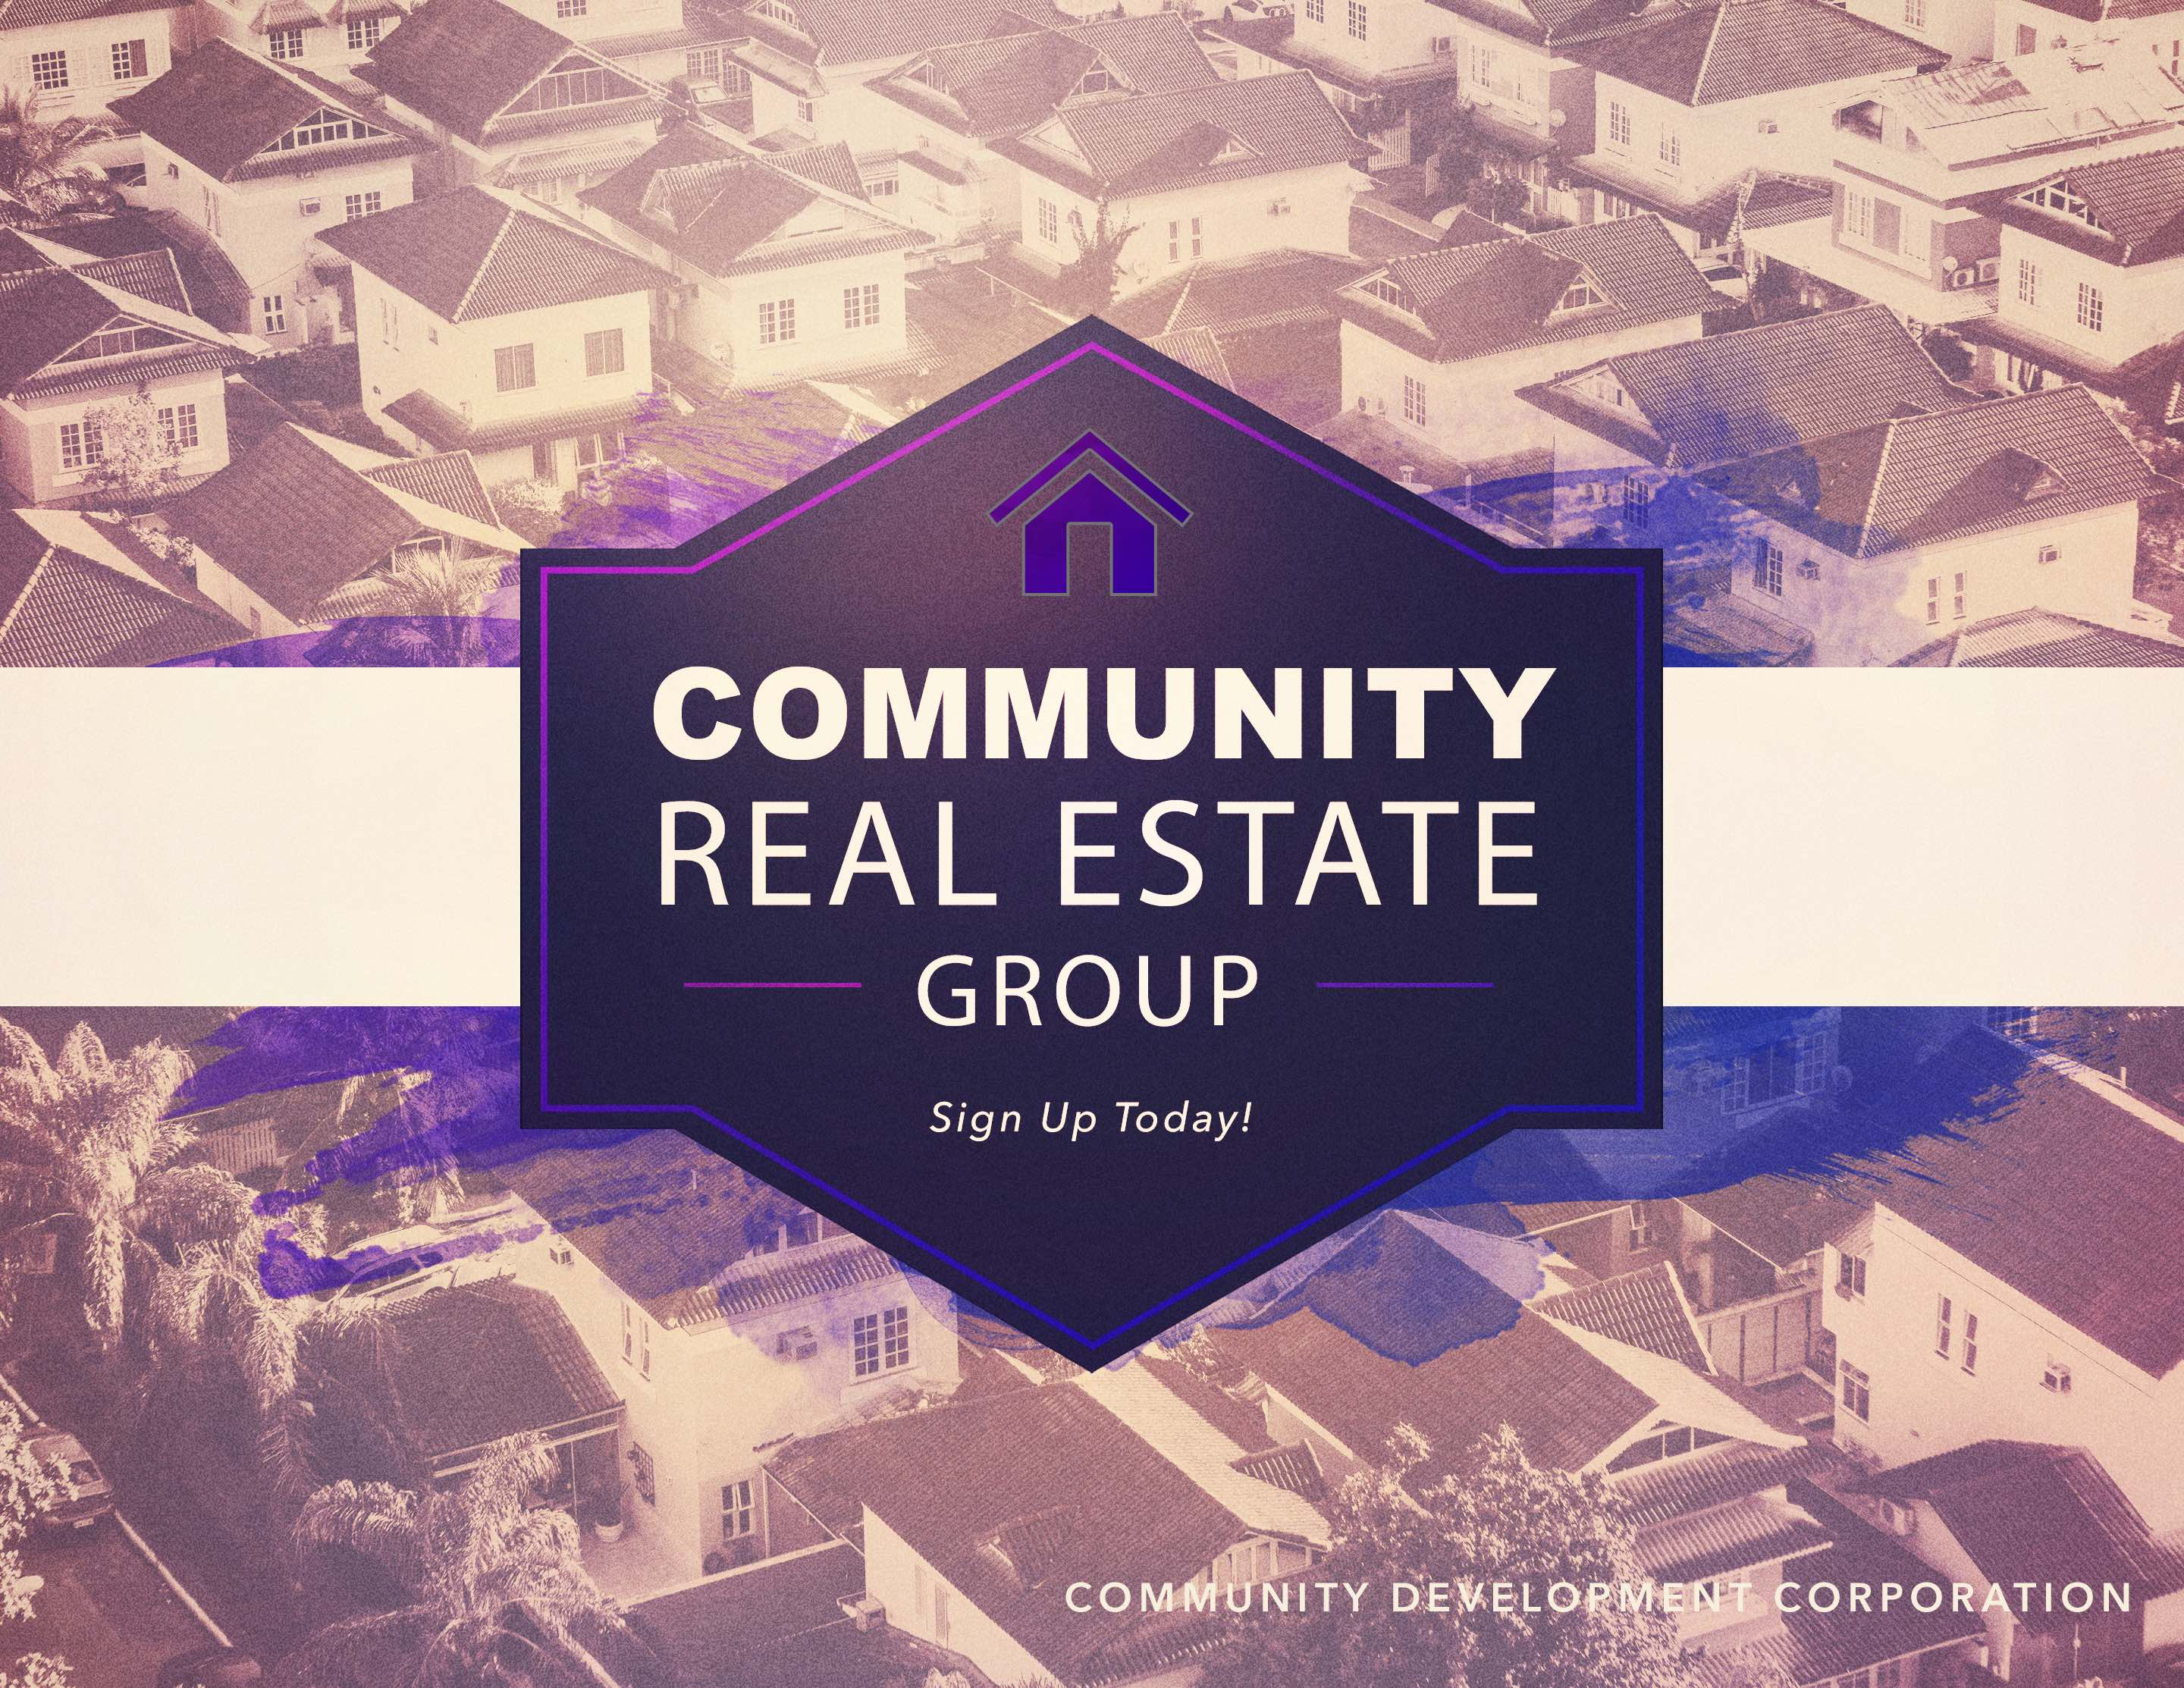 New Salem Community Real Estate Group